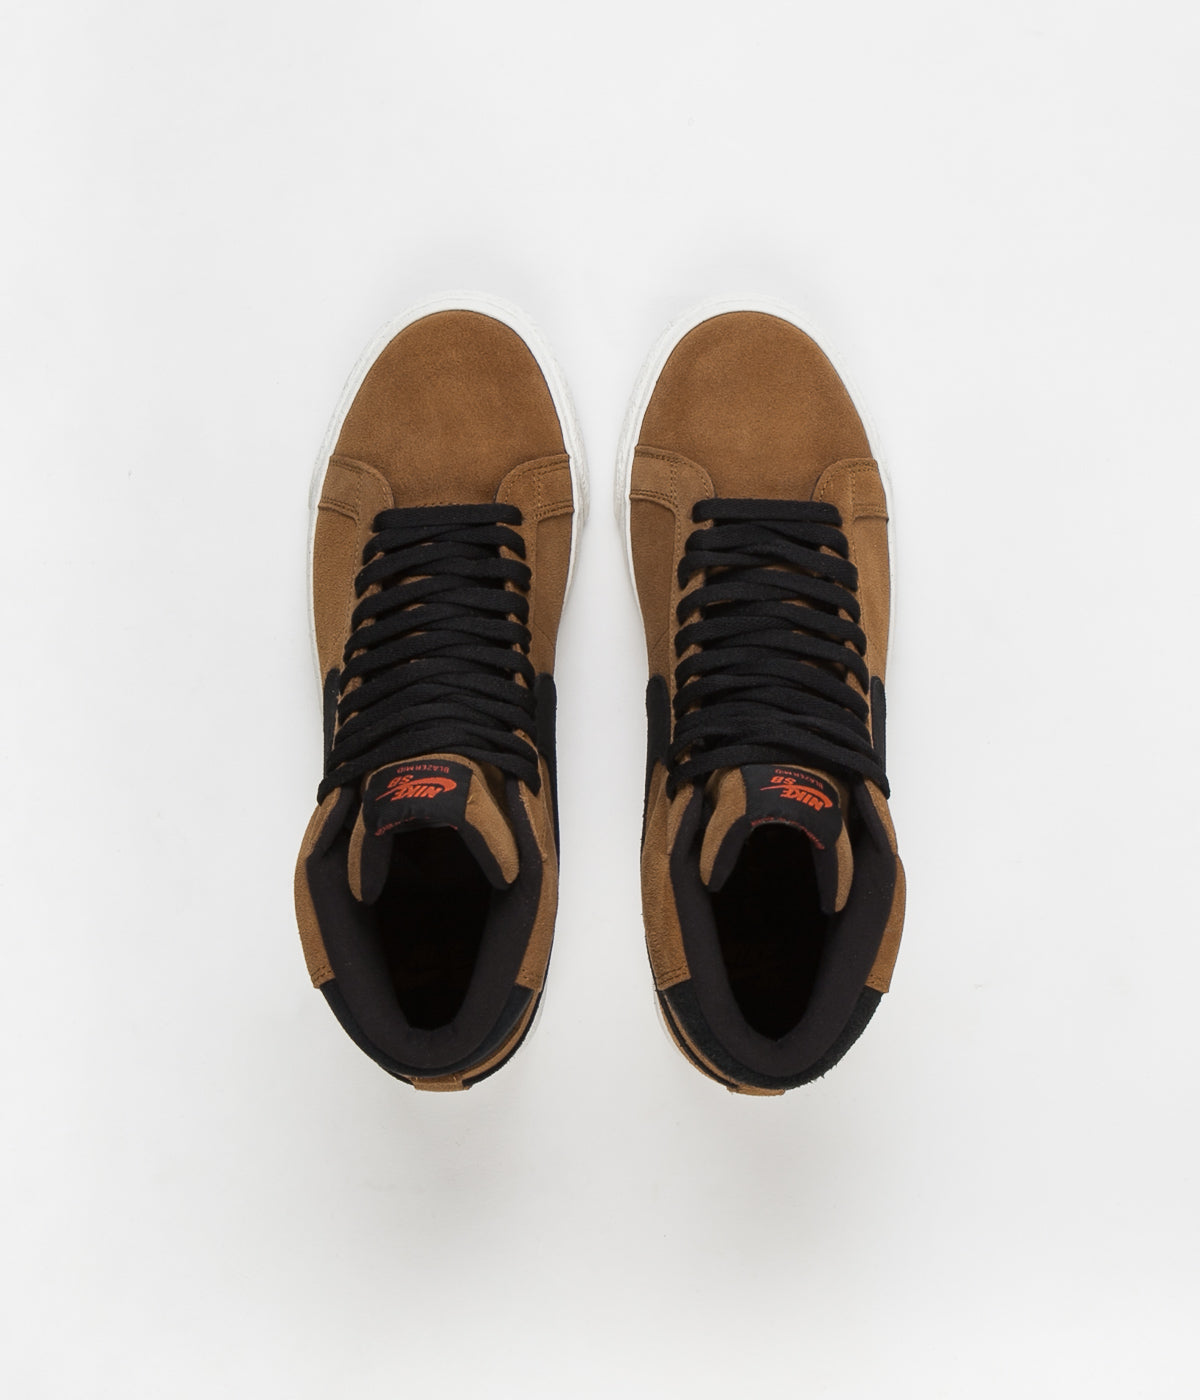 Nike SB Blazer Mid Shoes - Light British Tan / Black